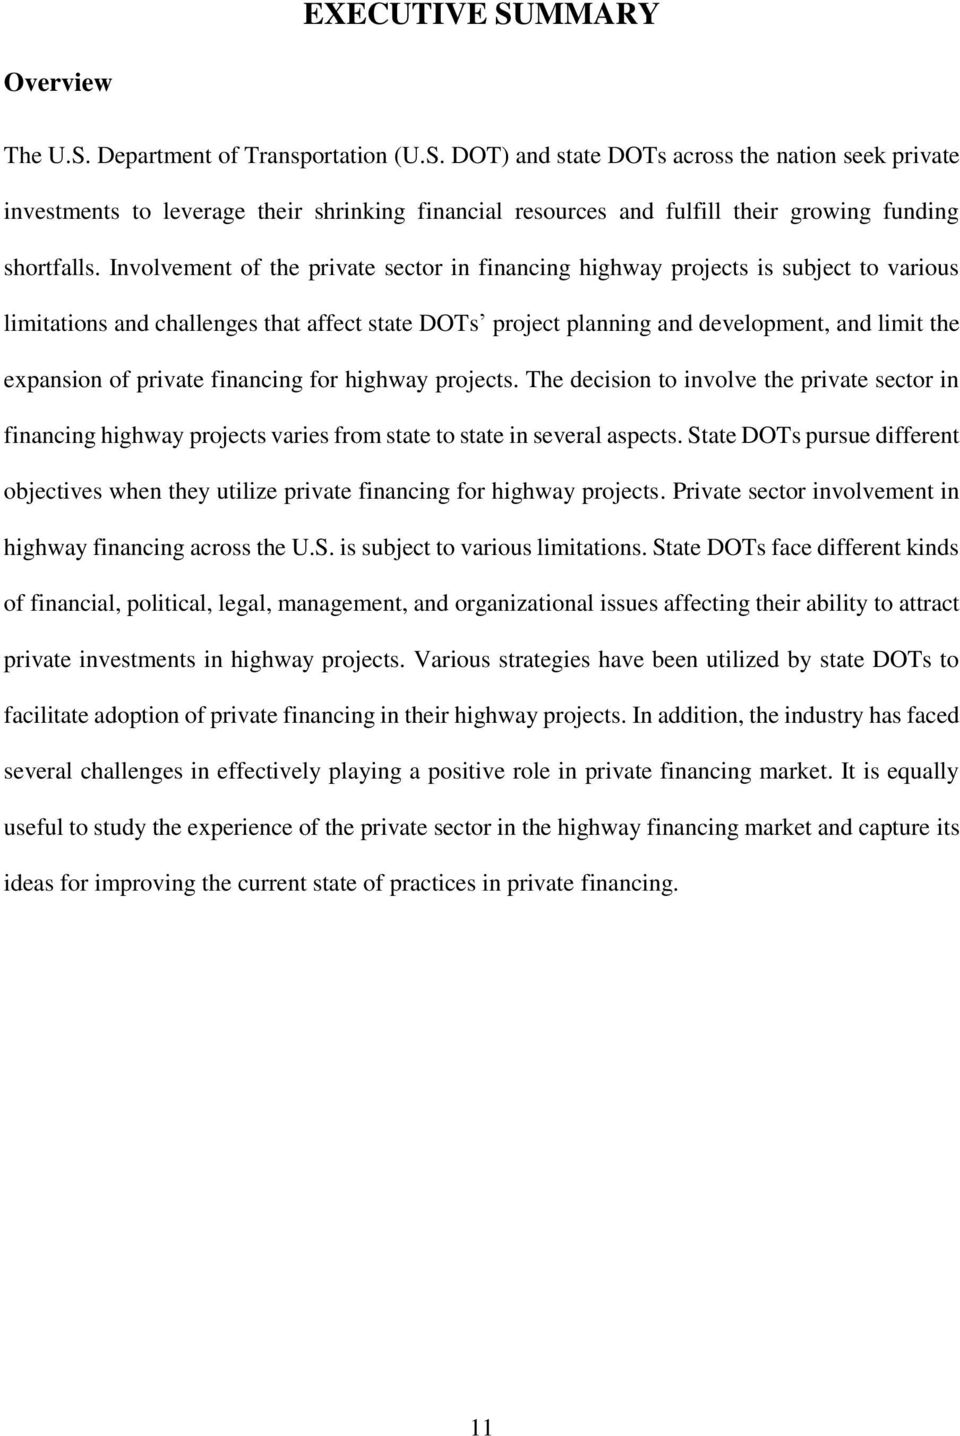 private financing for highway projects. The decision to involve the private sector in financing highway projects varies from state to state in several aspects.